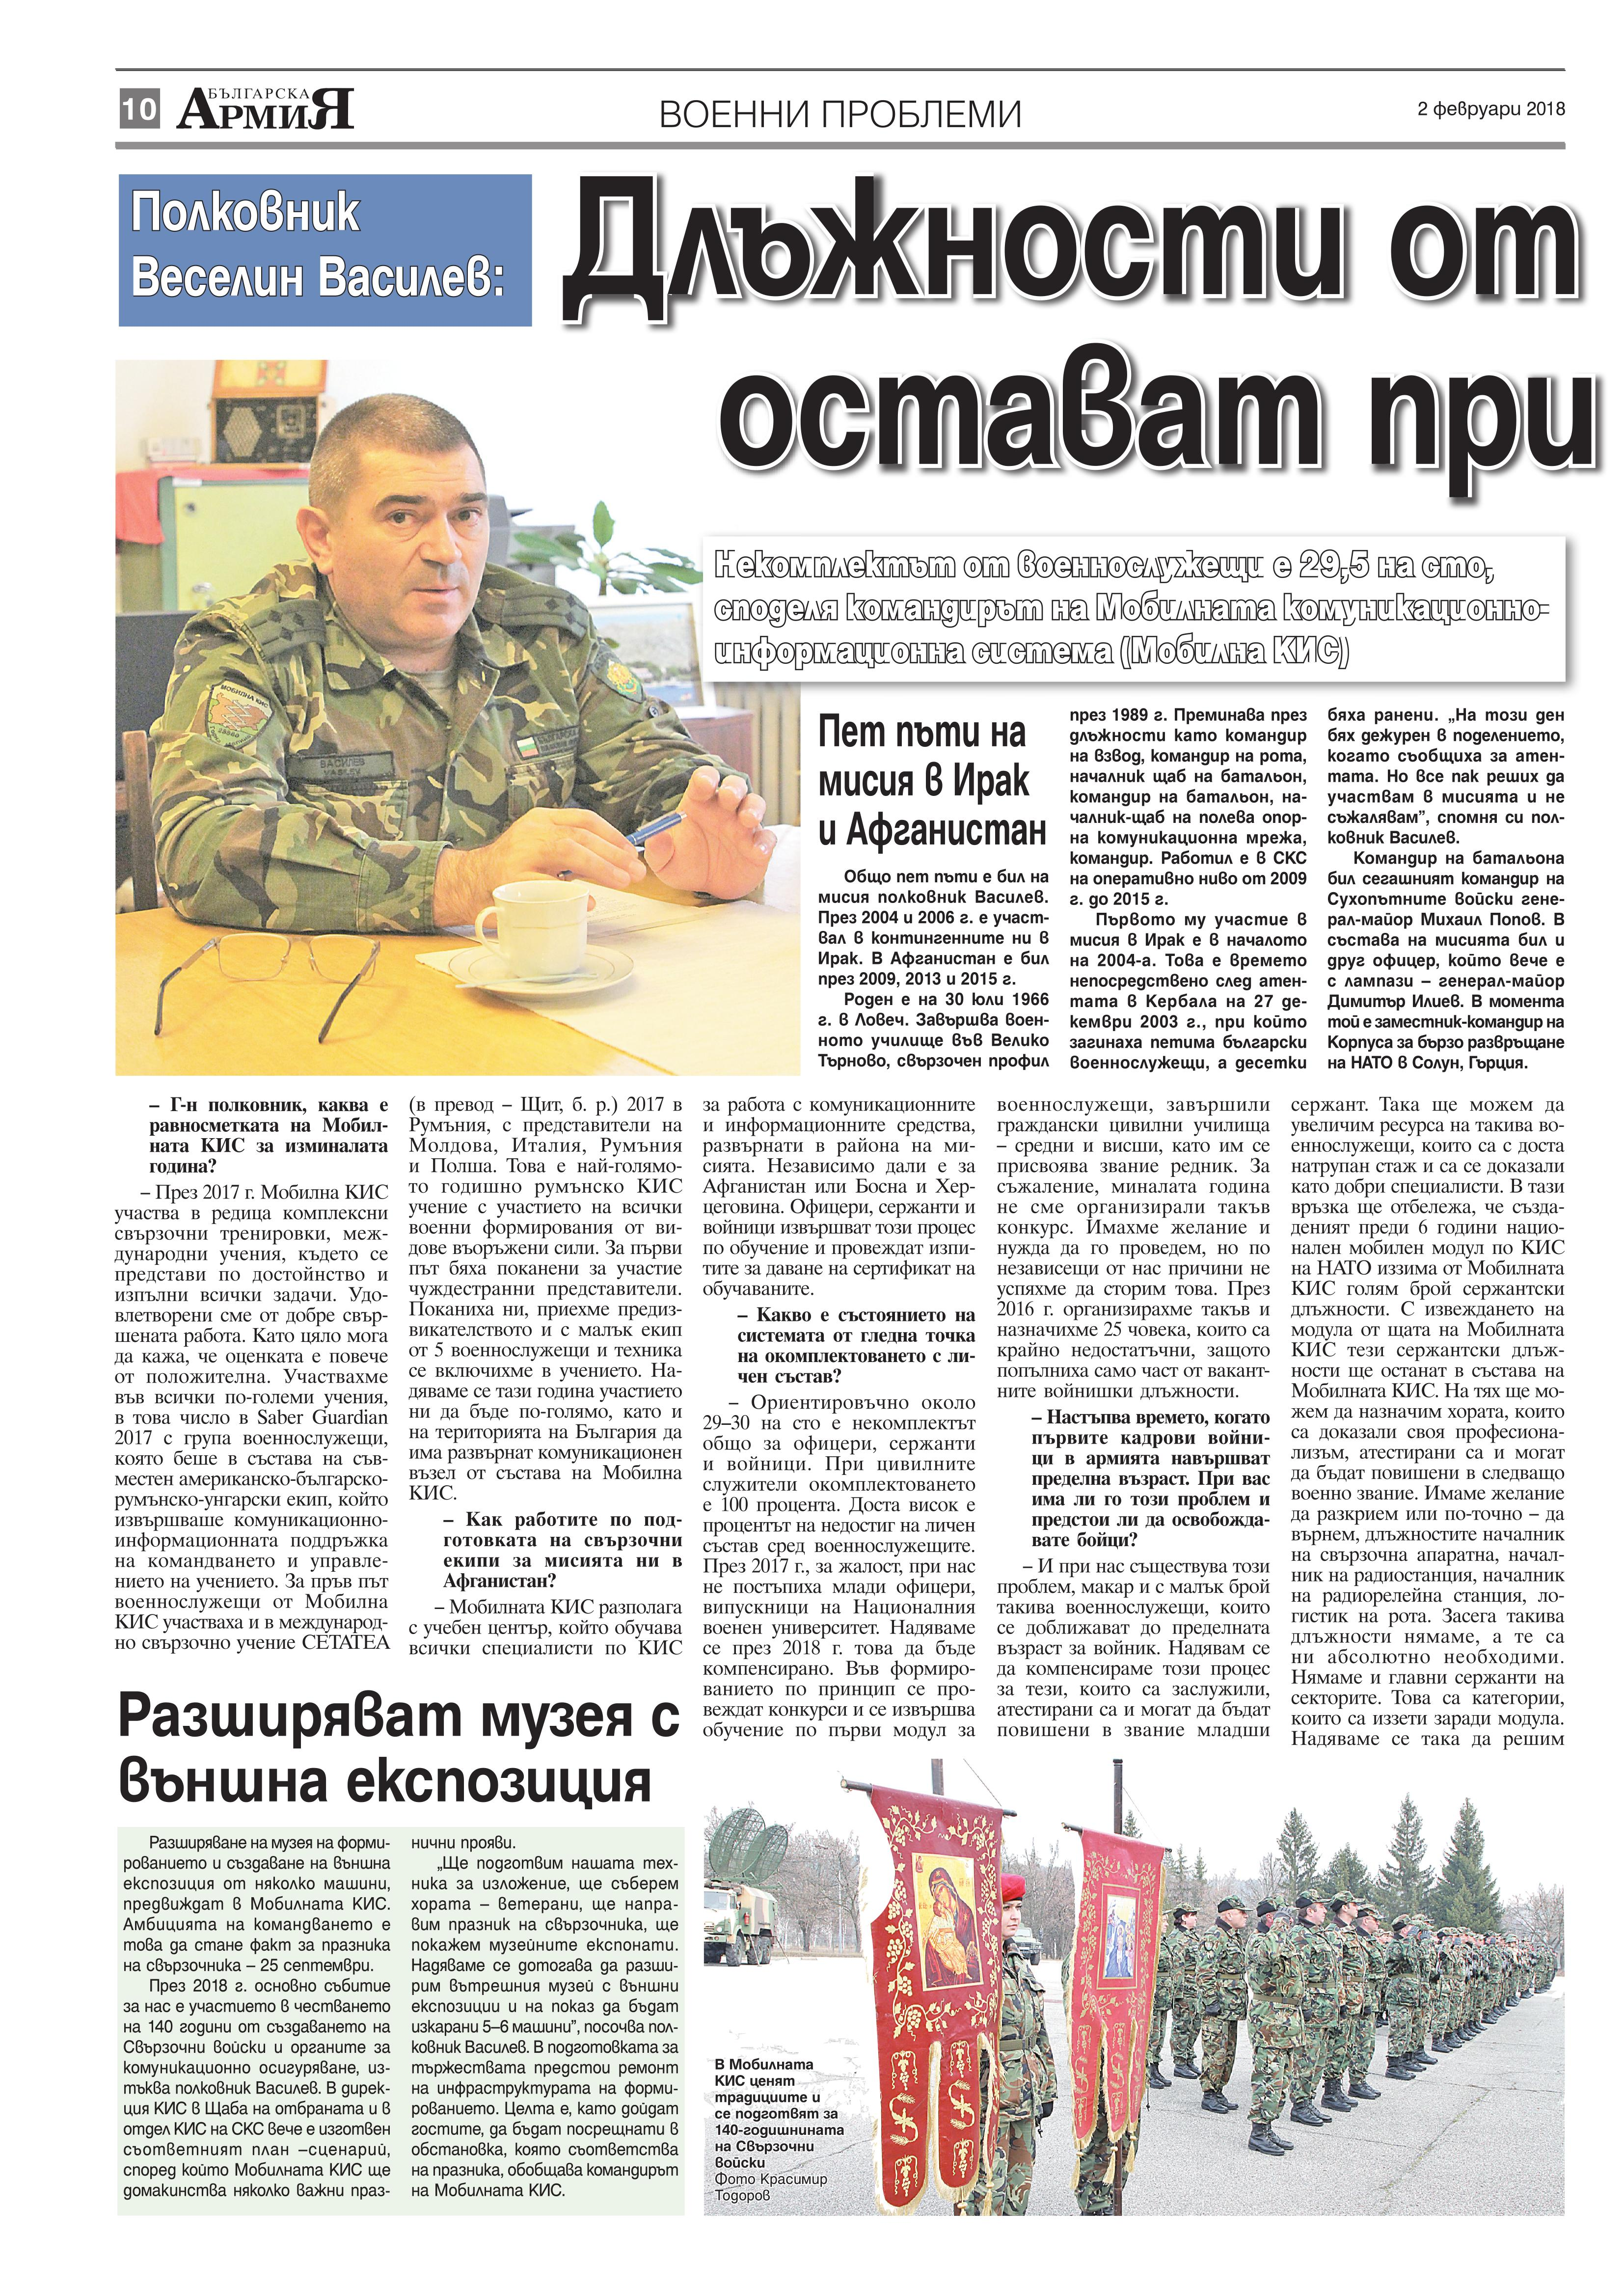 http://armymedia.bg/wp-content/uploads/2015/06/10.page1_-38.jpg